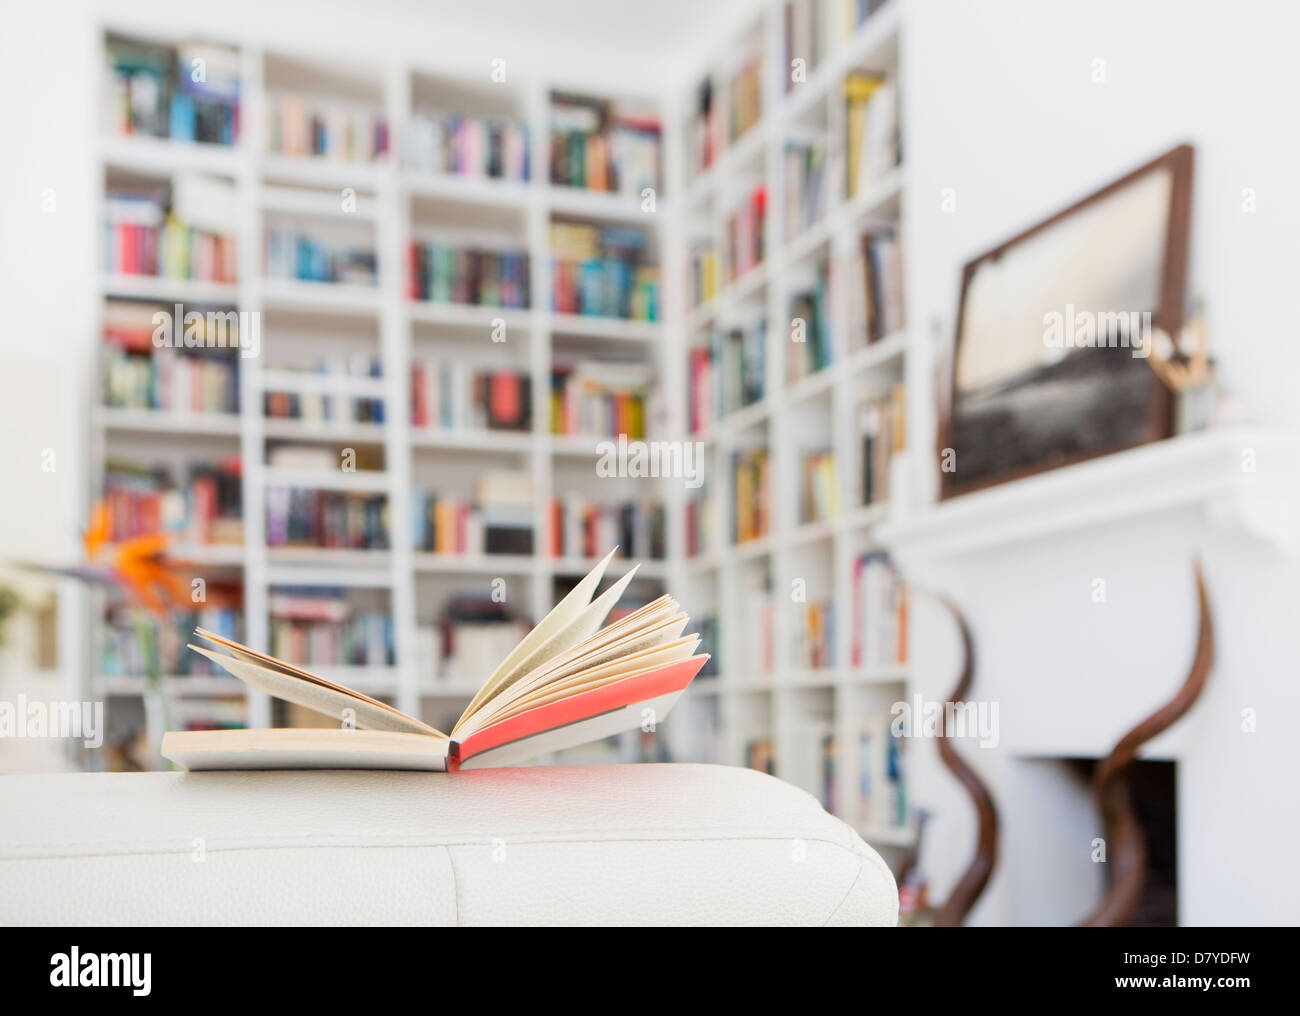 Open book on arm of sofa in living room - Stock Image